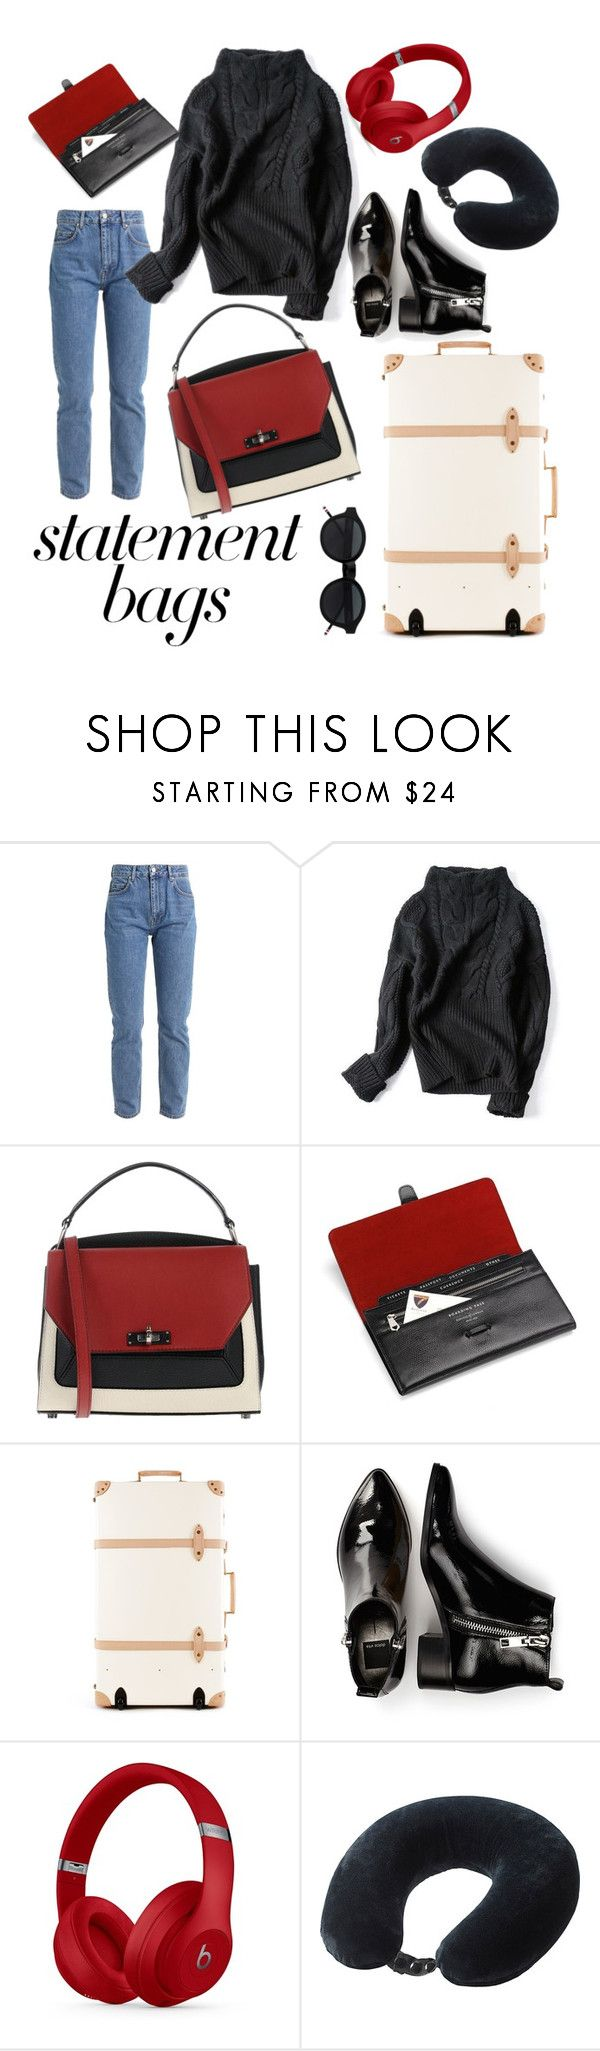 """Airport Style Statement Bag"" by alexia66 ❤ liked on Polyvore featuring Bally, Aspinal of London, Dolce Vita, Beats by Dr. Dre, Lewis N. Clark, airportfashion, sportchic, airportstyle and statementbags"